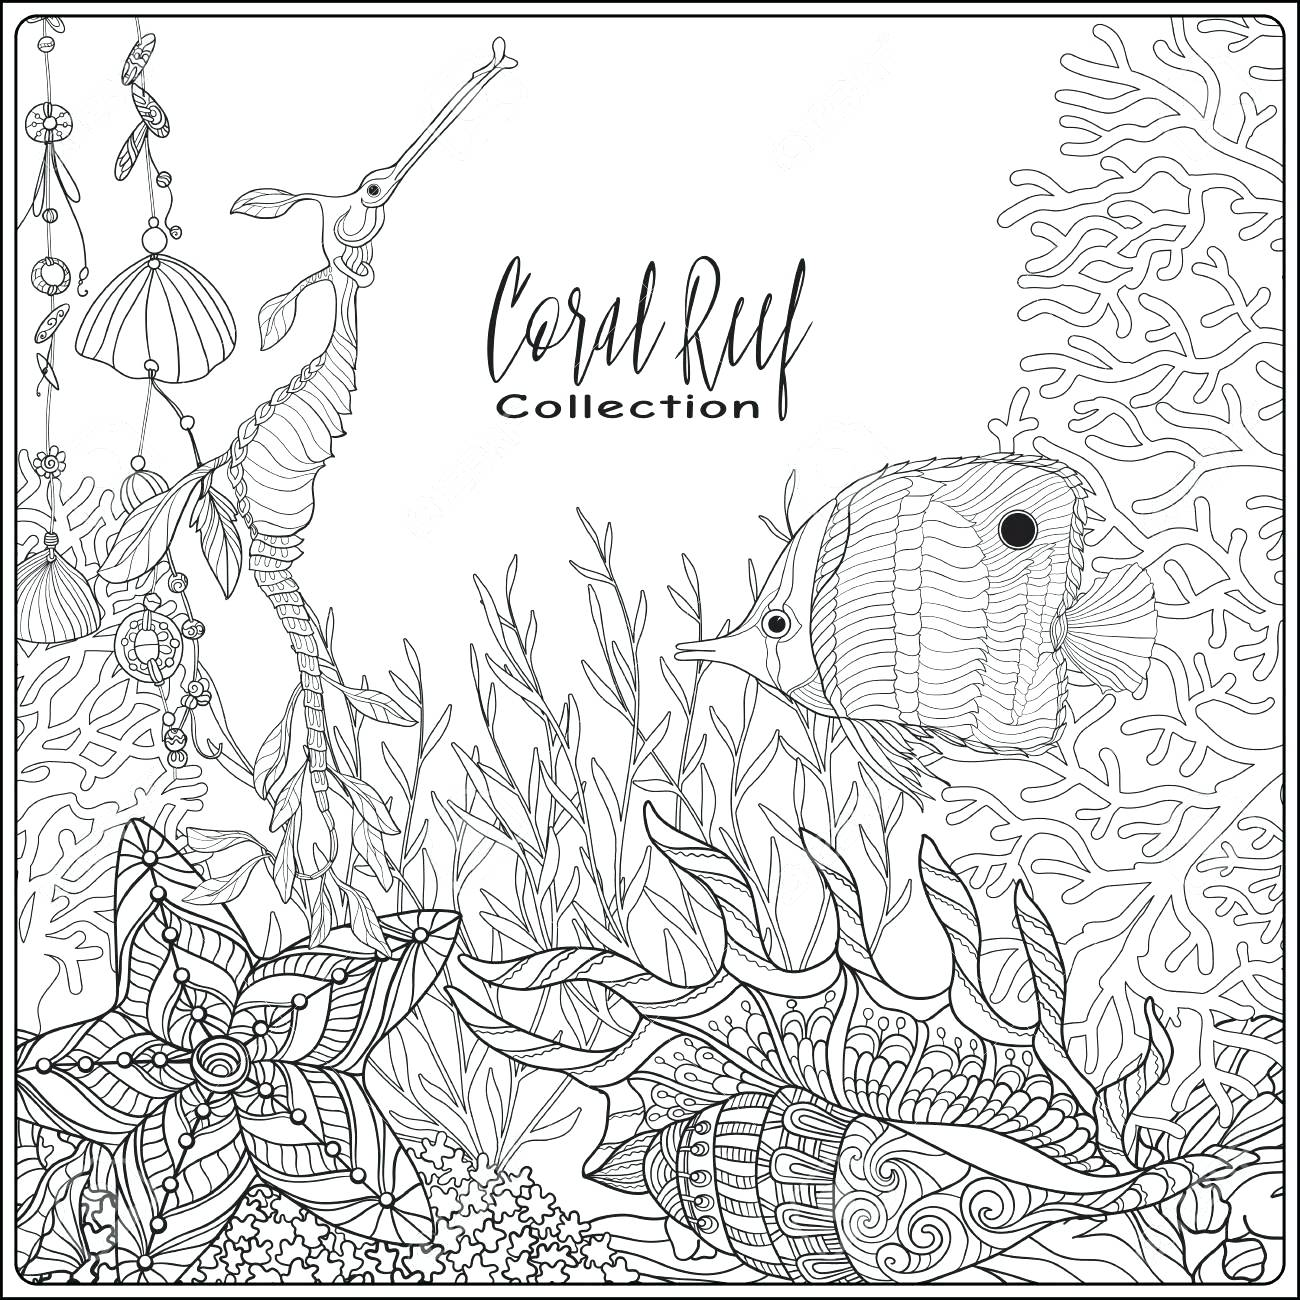 1300x1300 Coloring Great Barrier Reef Coloring Pages